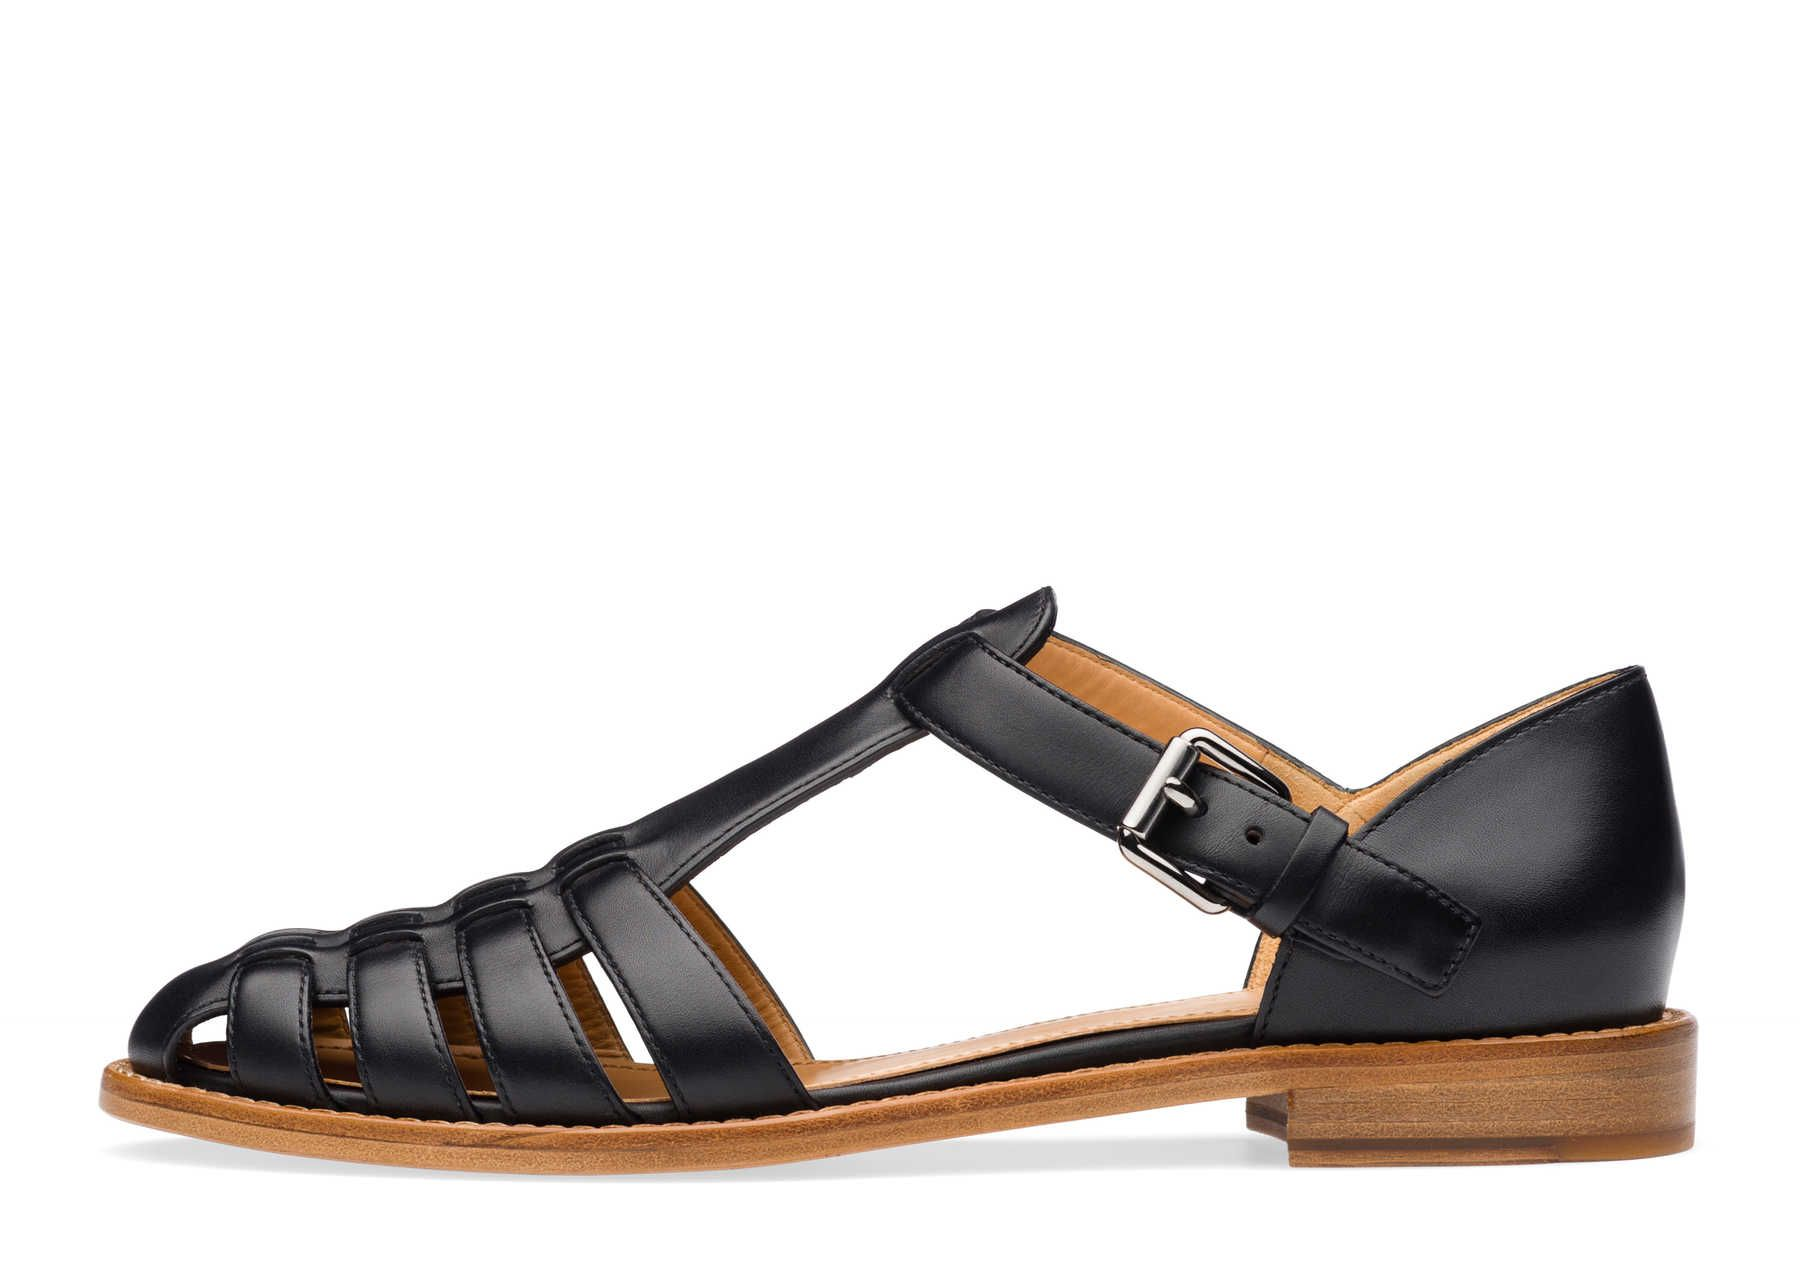 7407c44a2a9cd2 Church s Footwear website - Discover and shop the new collection ...